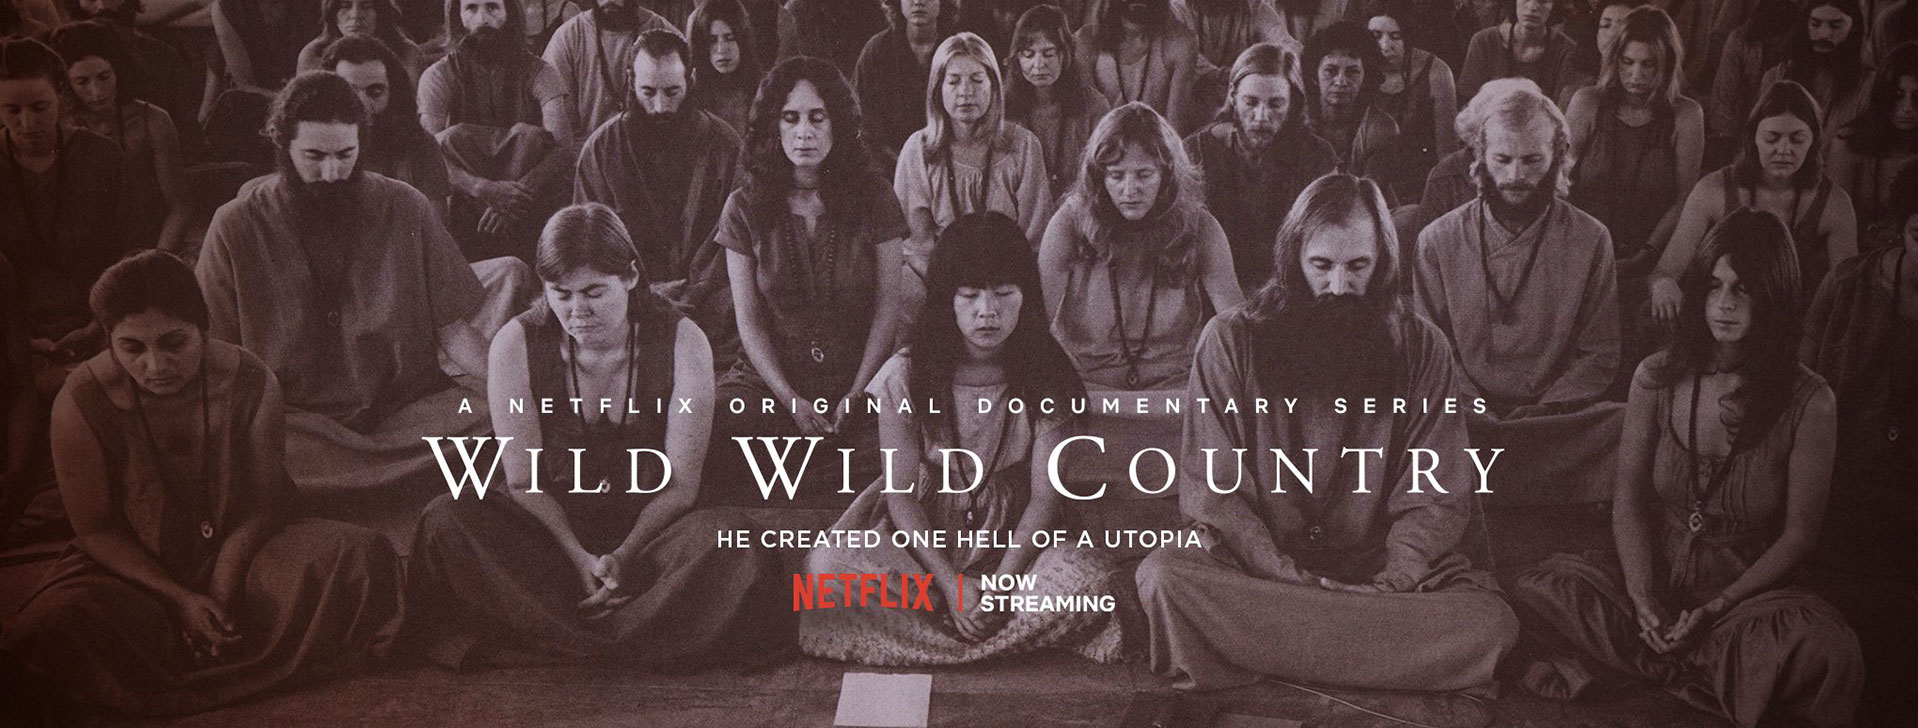 documentaire netflix secte rajneeshpuram oregon wild wild country